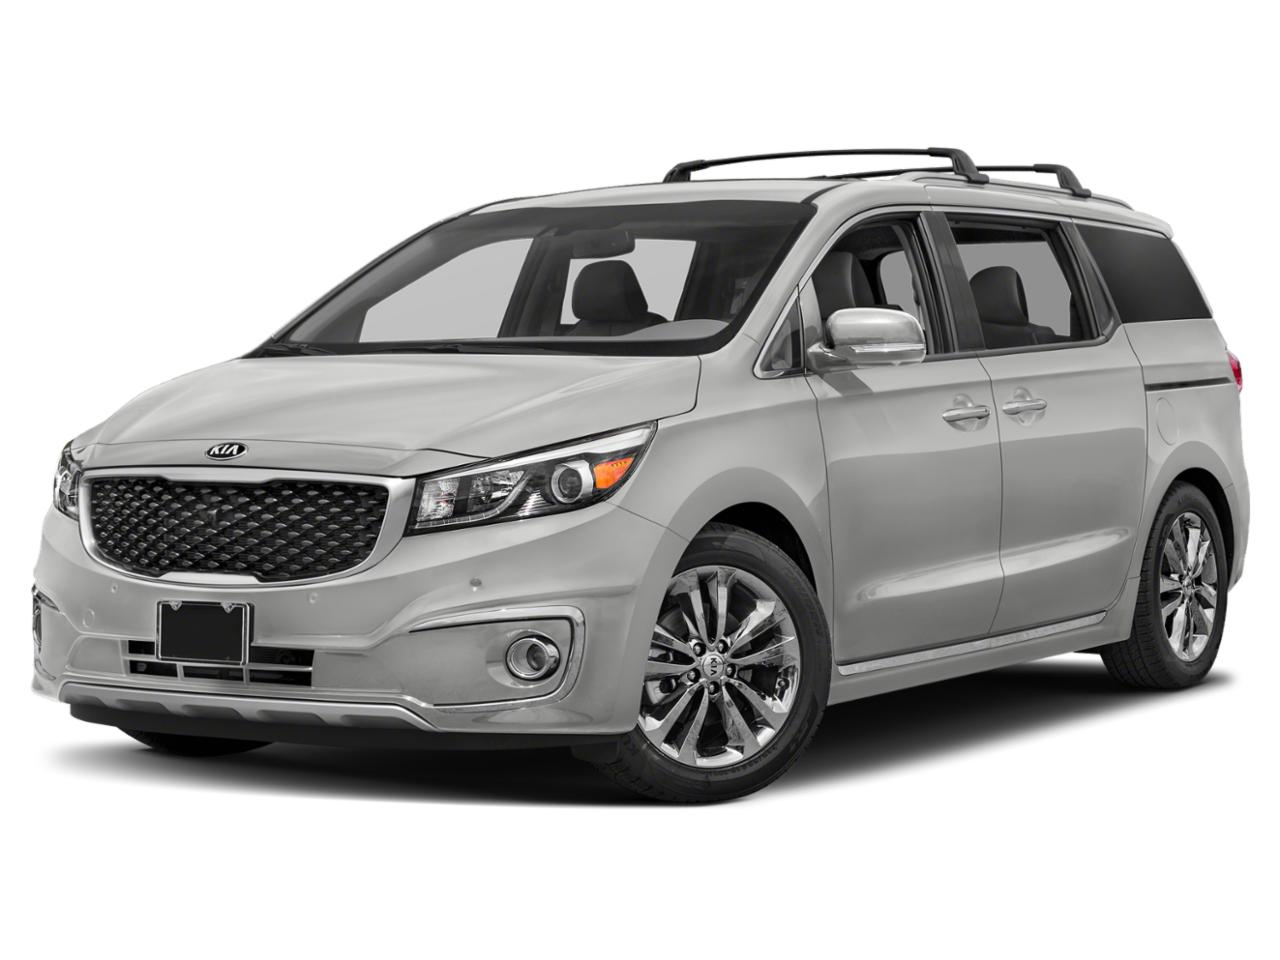 2018 Kia Sedona Vehicle Photo in Oshkosh, WI 54904